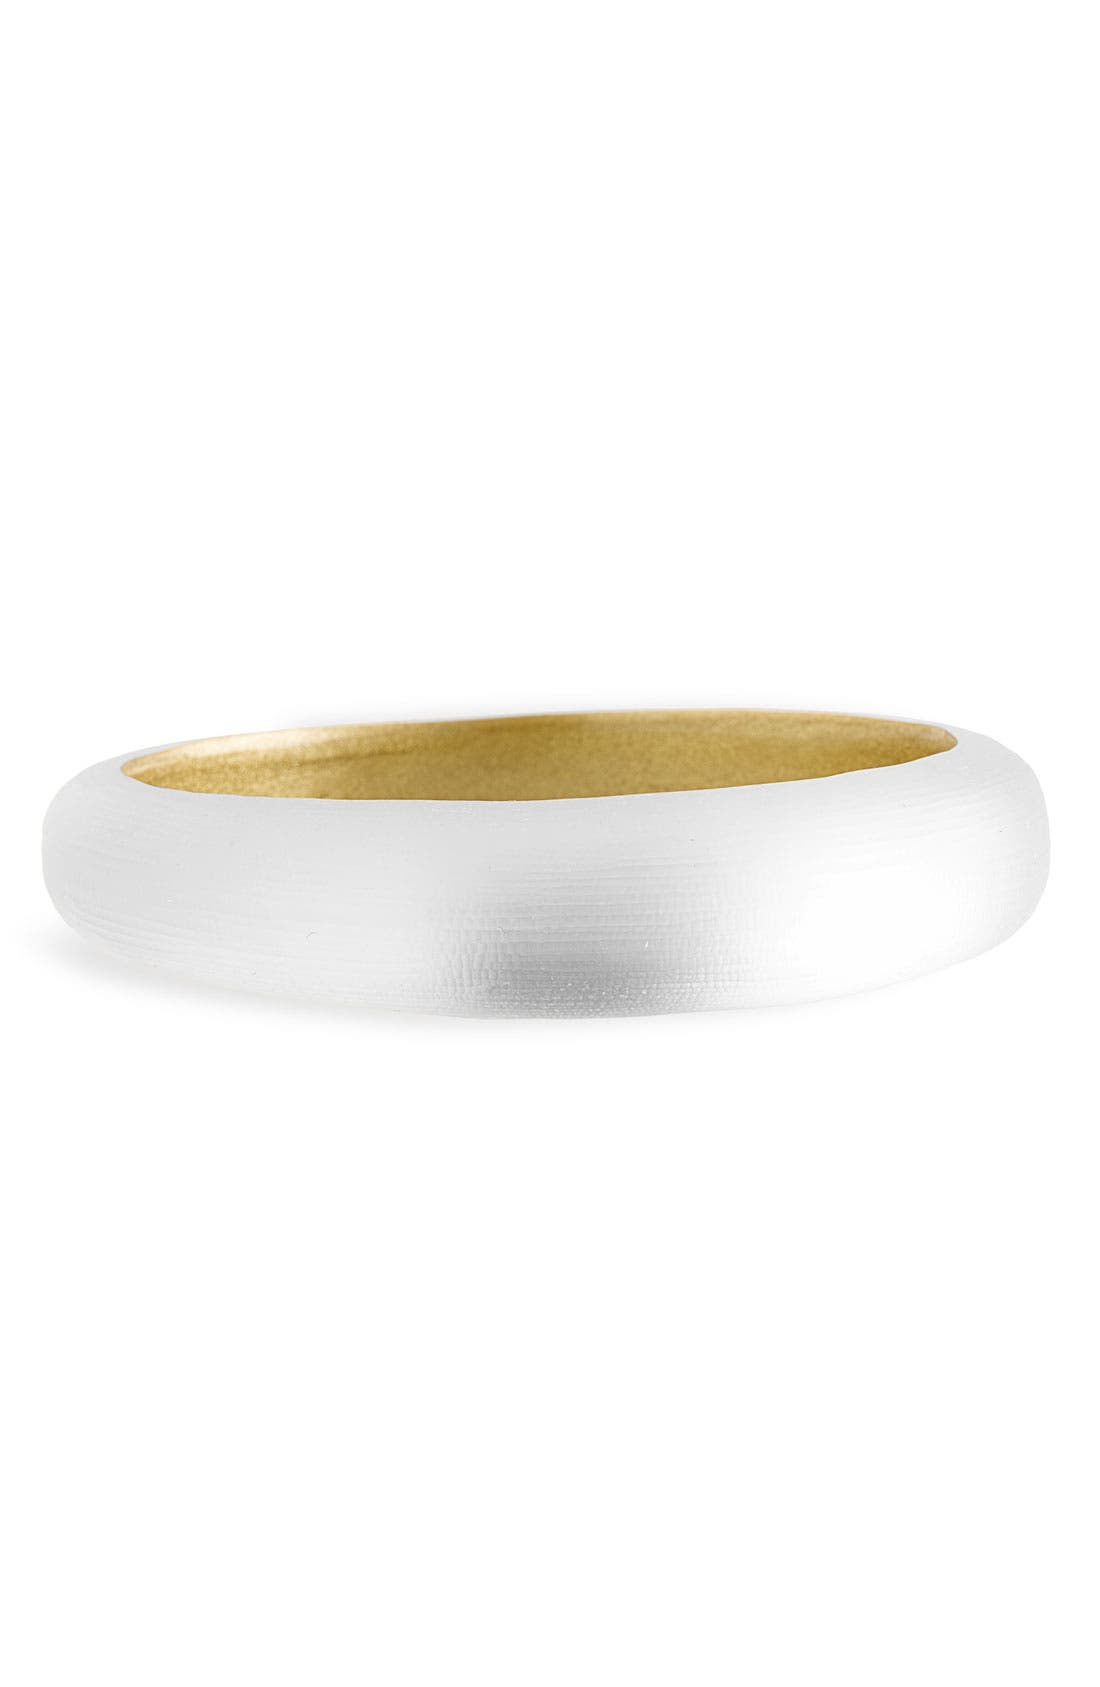 Alternate Image 1 Selected - Alexis Bittar Medium Tapered Bangle (Nordstrom Exclusive)